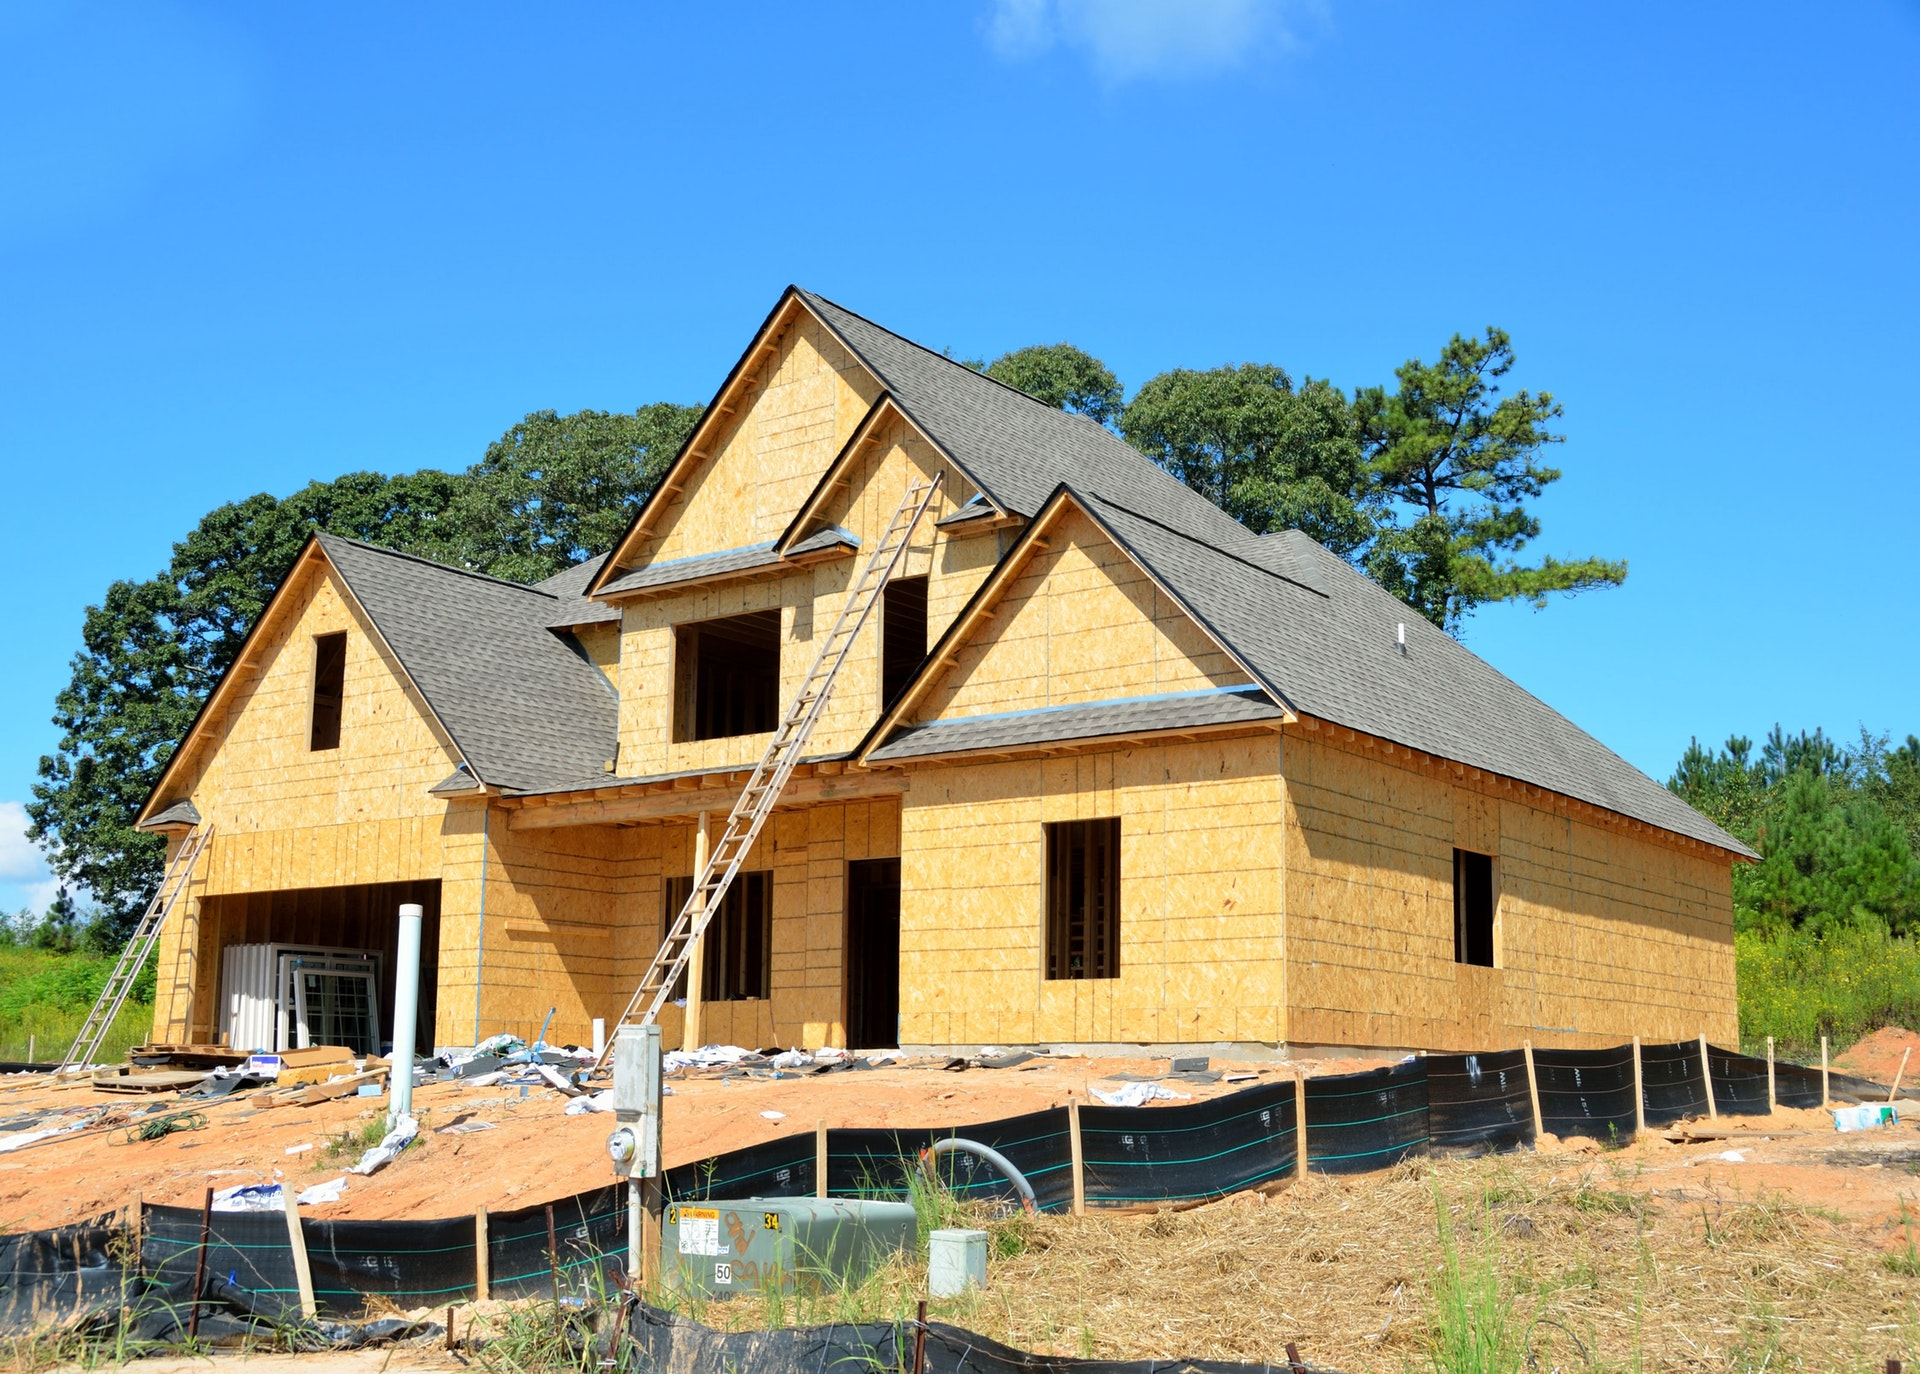 Top 5 Homebuilding Trends